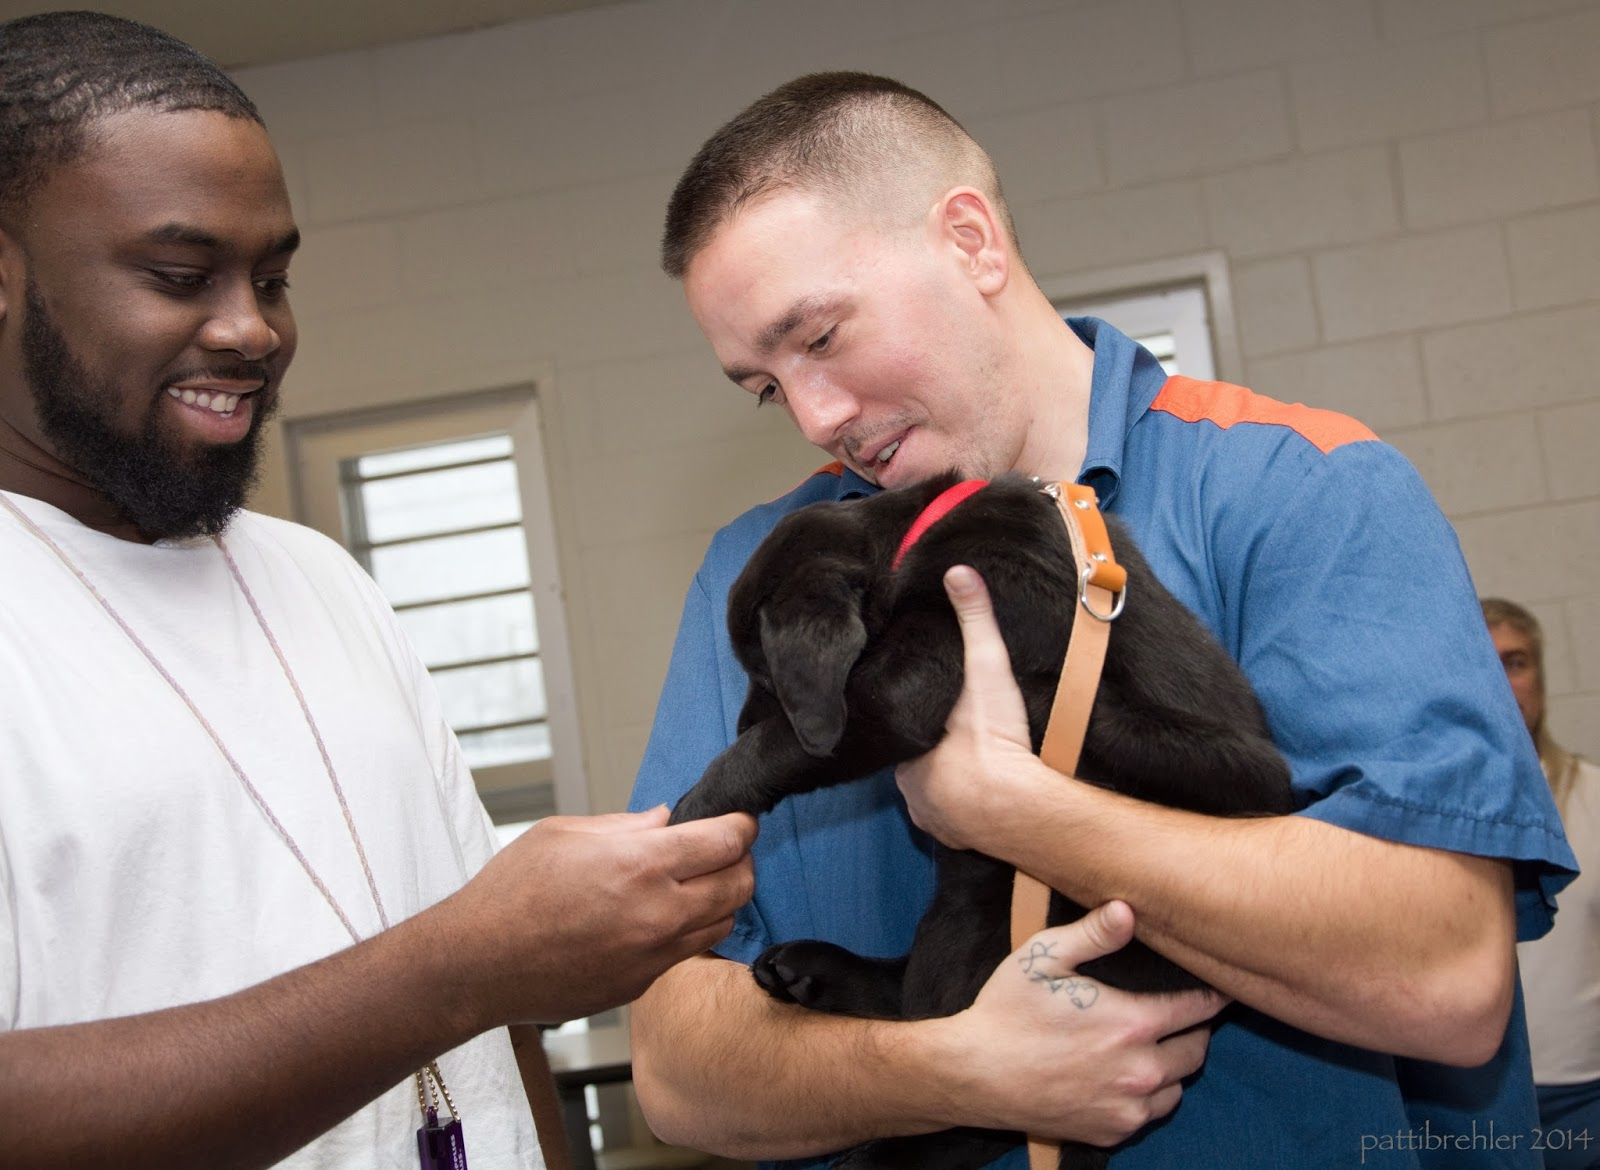 An african american man wearing a white t-shirt is on the left side looking at a black lab puppy being held by another man on the right side. Both men are smiling and looking at the puppy. The man on the left is holding the puppy's front paw with his right hand.